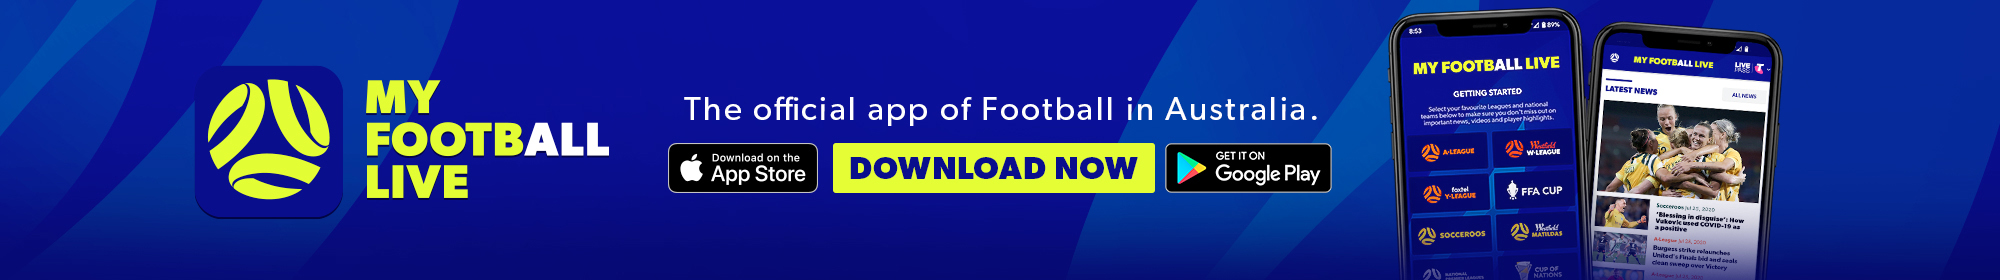 My Football Live app thin banner 2021